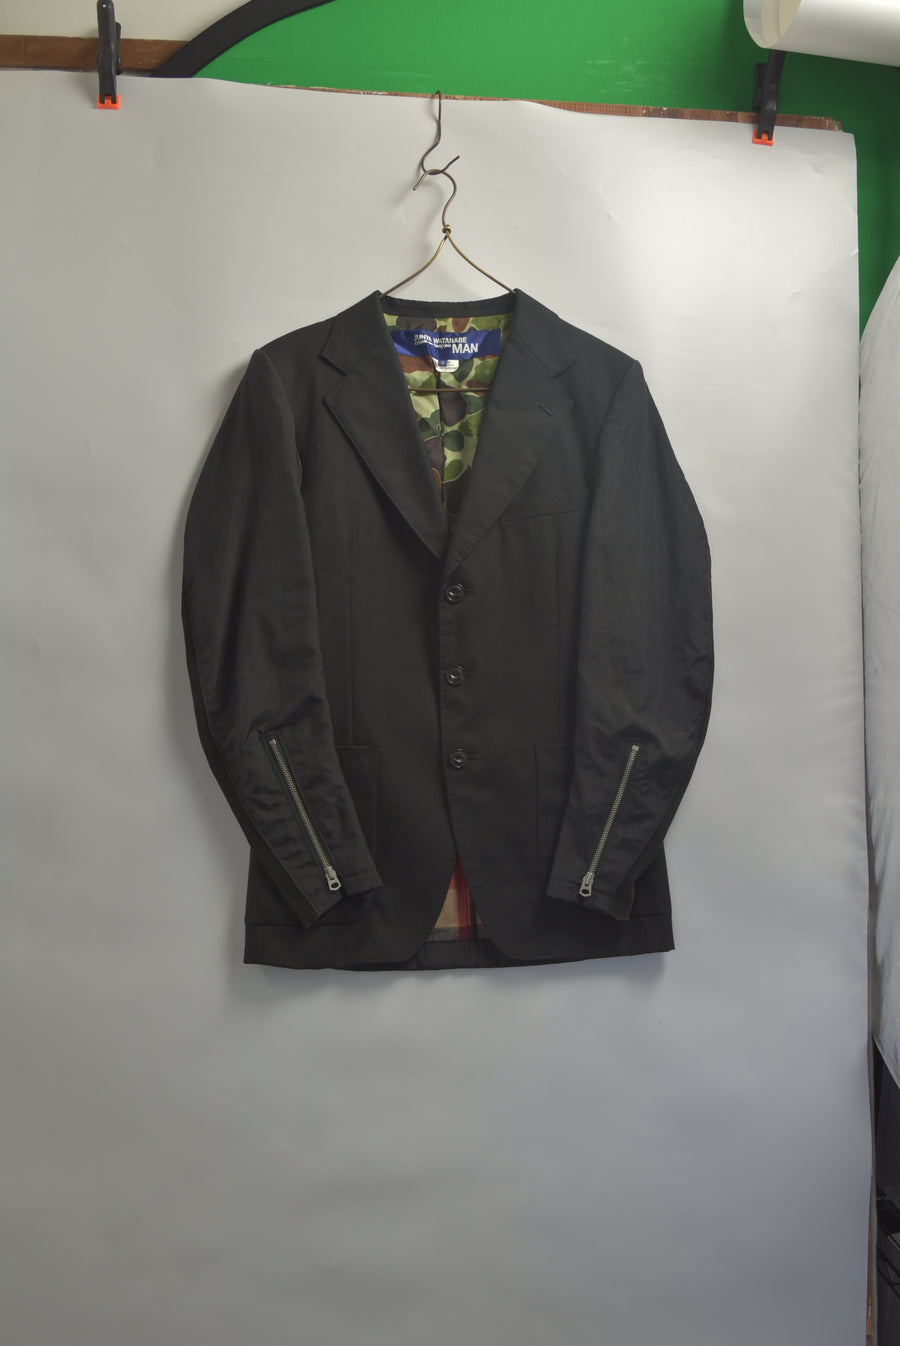 JUNYA WATANABE MAN COMME des GARCONS / Riders Tailored Jacket / 8155 - 0701 146.5